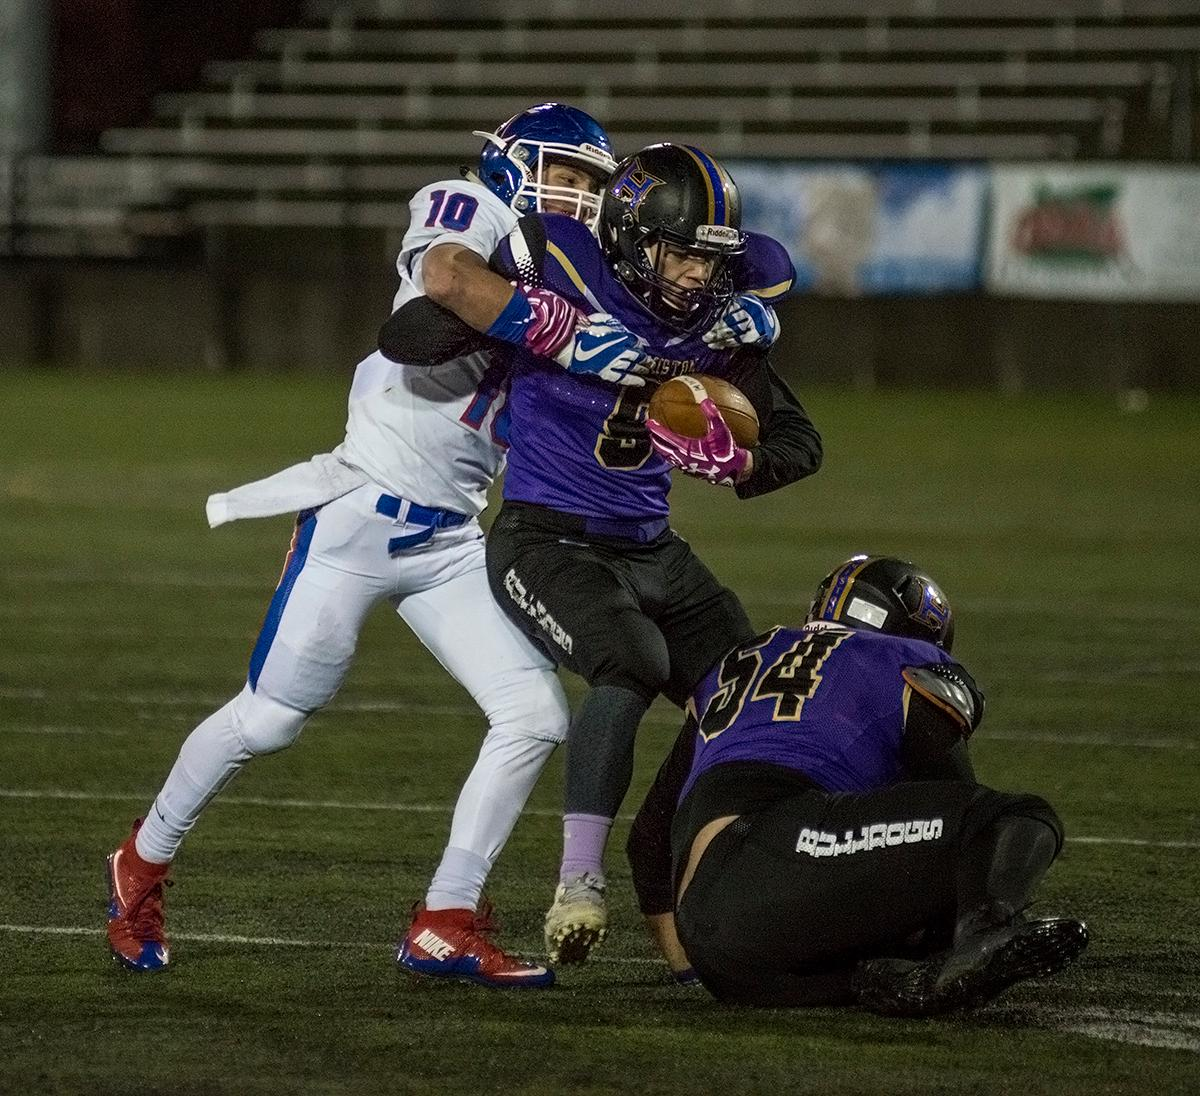 Churchill Lancers defensive back Tyson Bennion (#10) tackles the Hermiston Bulldogs ball carrier to end a play. The Hermiston Bulldogs defeated the Churchill Lancers 38-35 for the 5A state title Saturday evening at Hillsboro Stadium. Photo by Abigail Winn, Oregon News Lab